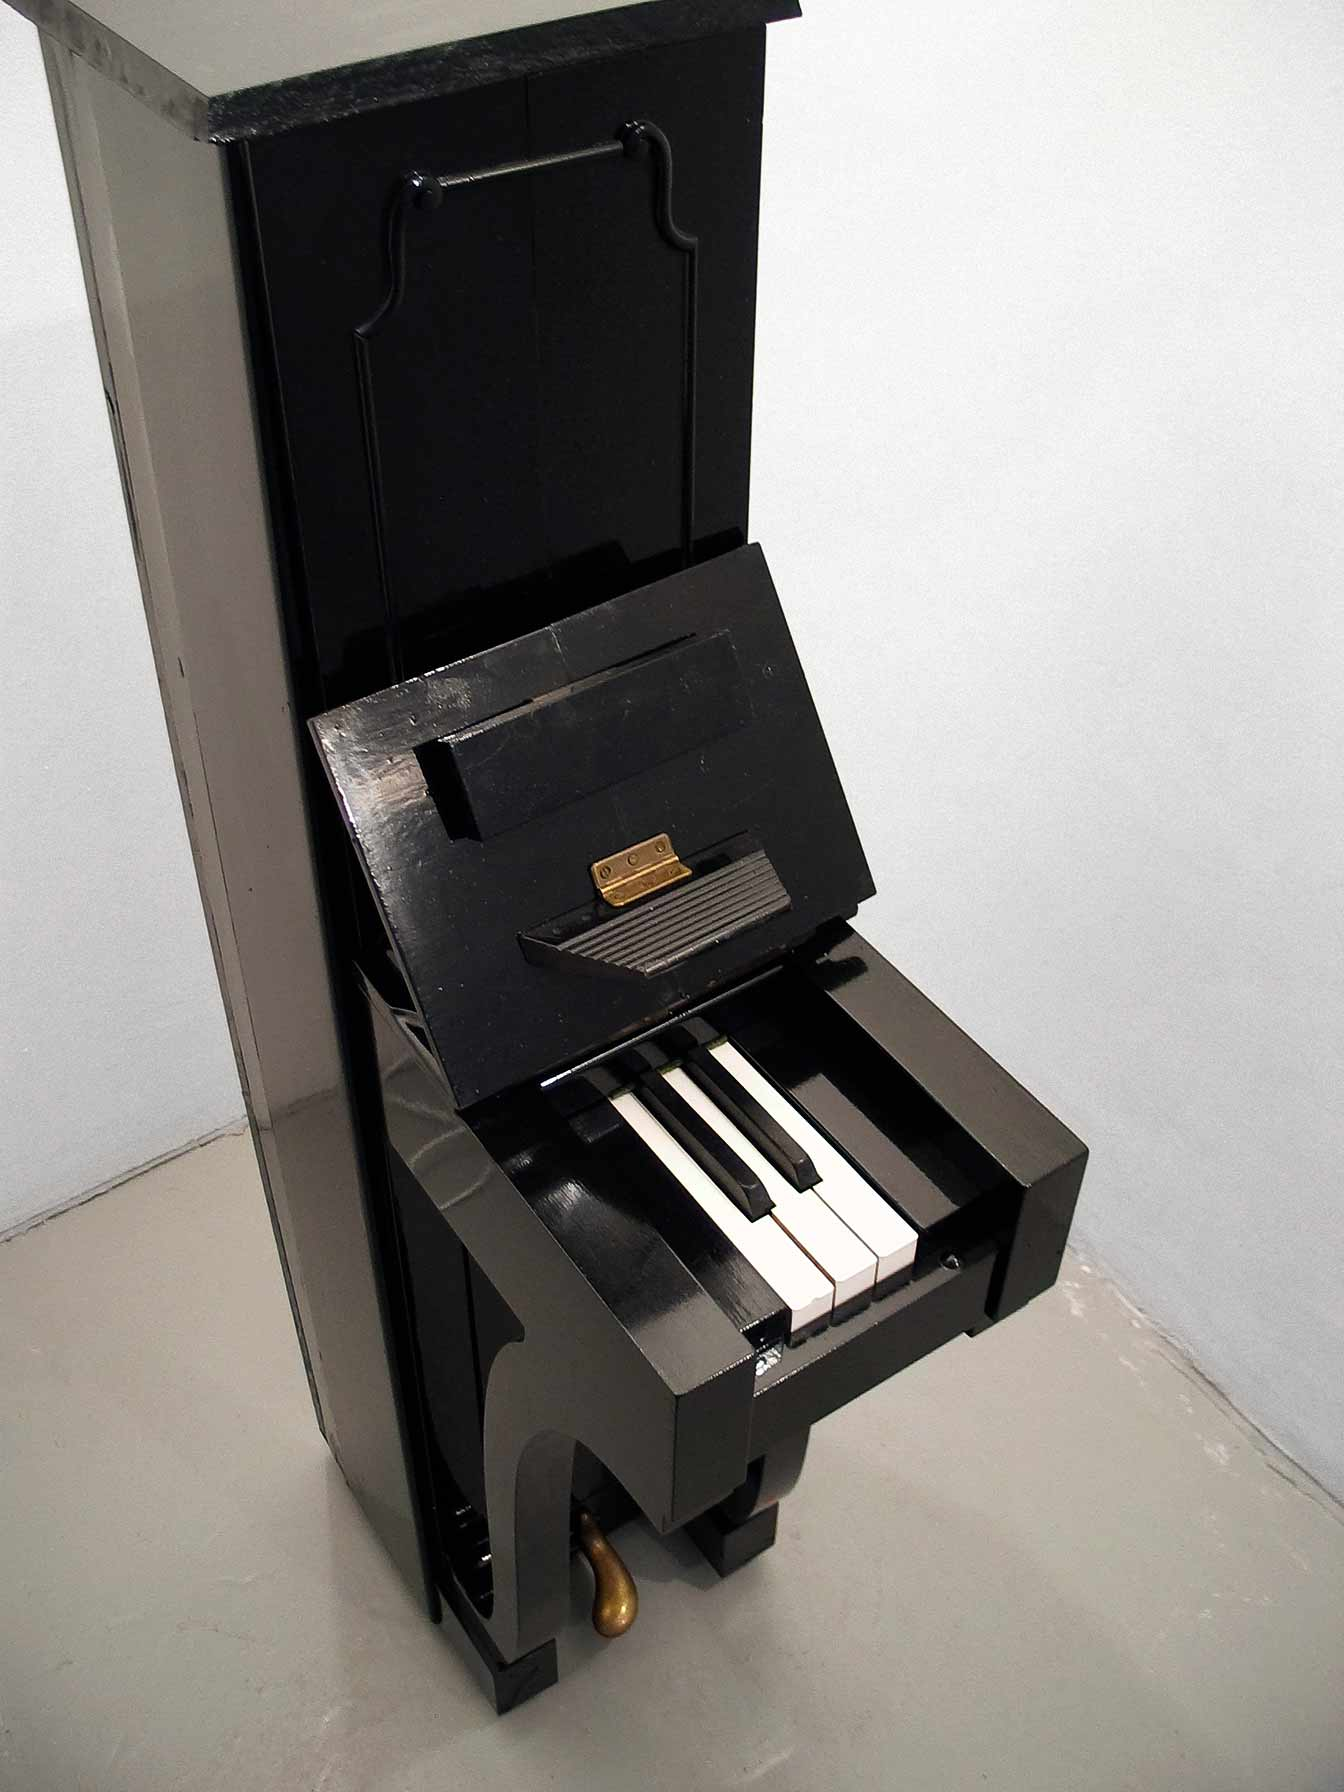 Piano, narrow piano with three white and two black keys, sculpture by Björn Perborg, bird's eya view.